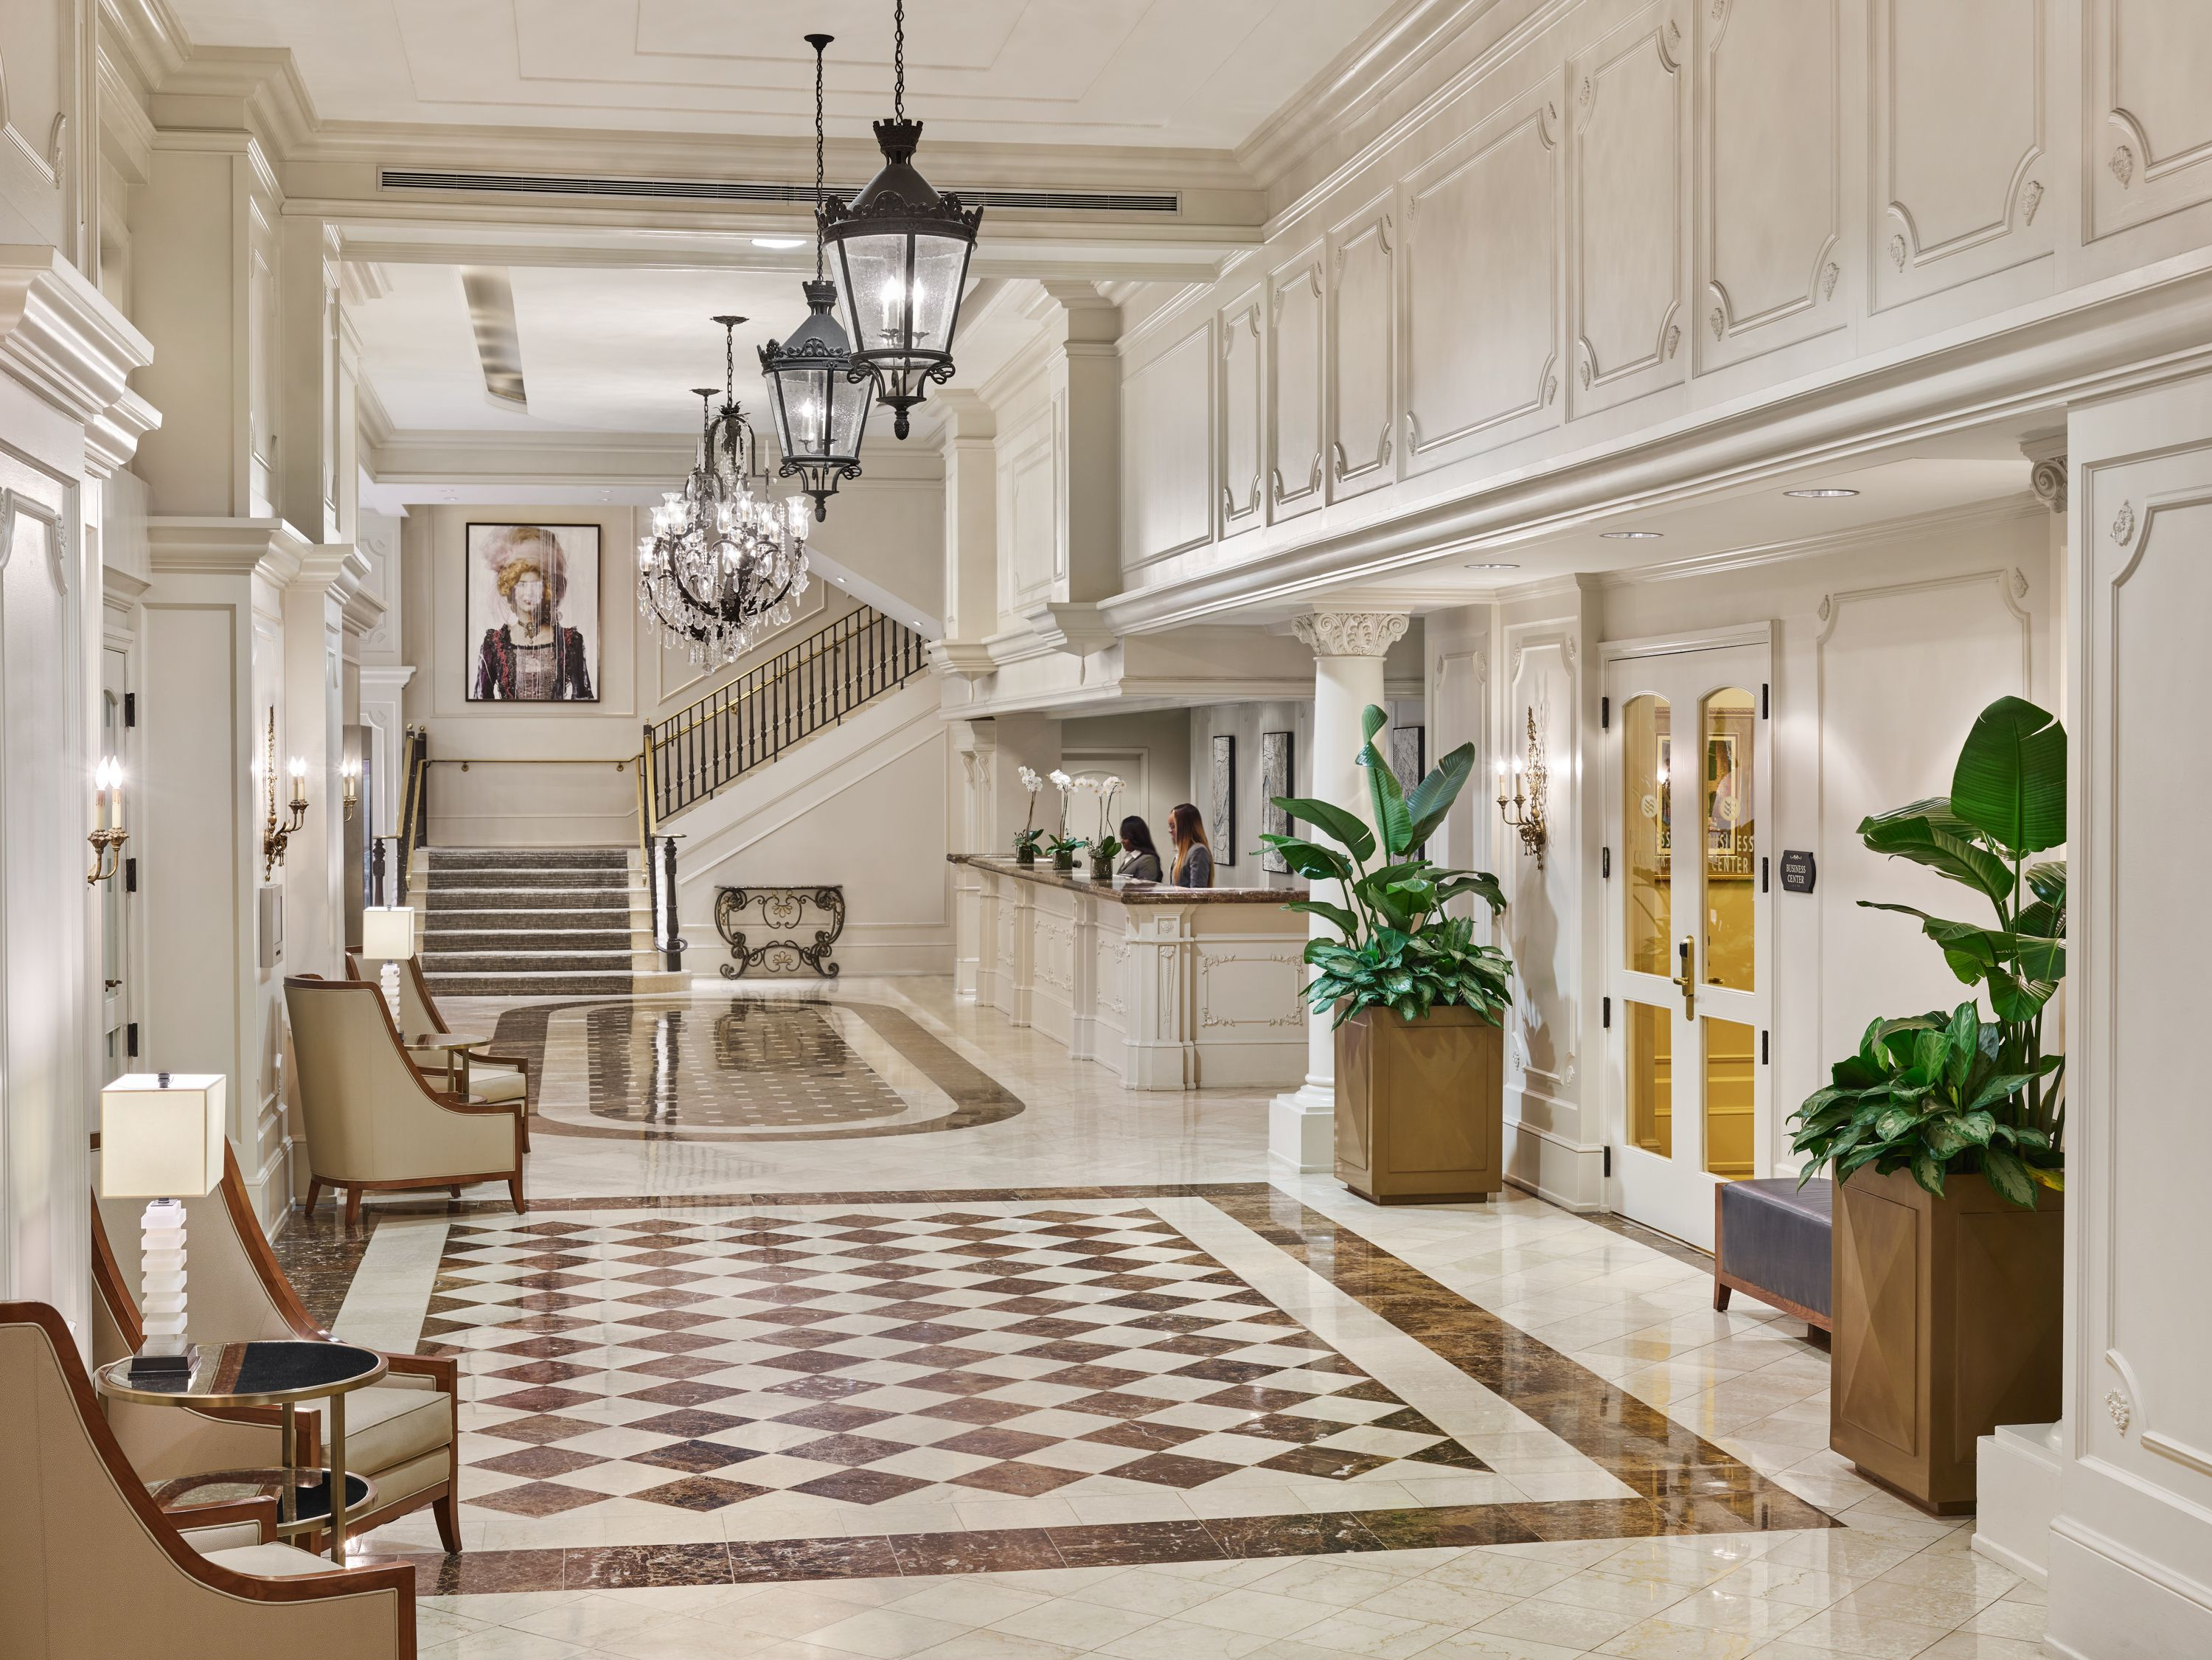 Crowne Plaza New Orleans French Quarter image 5